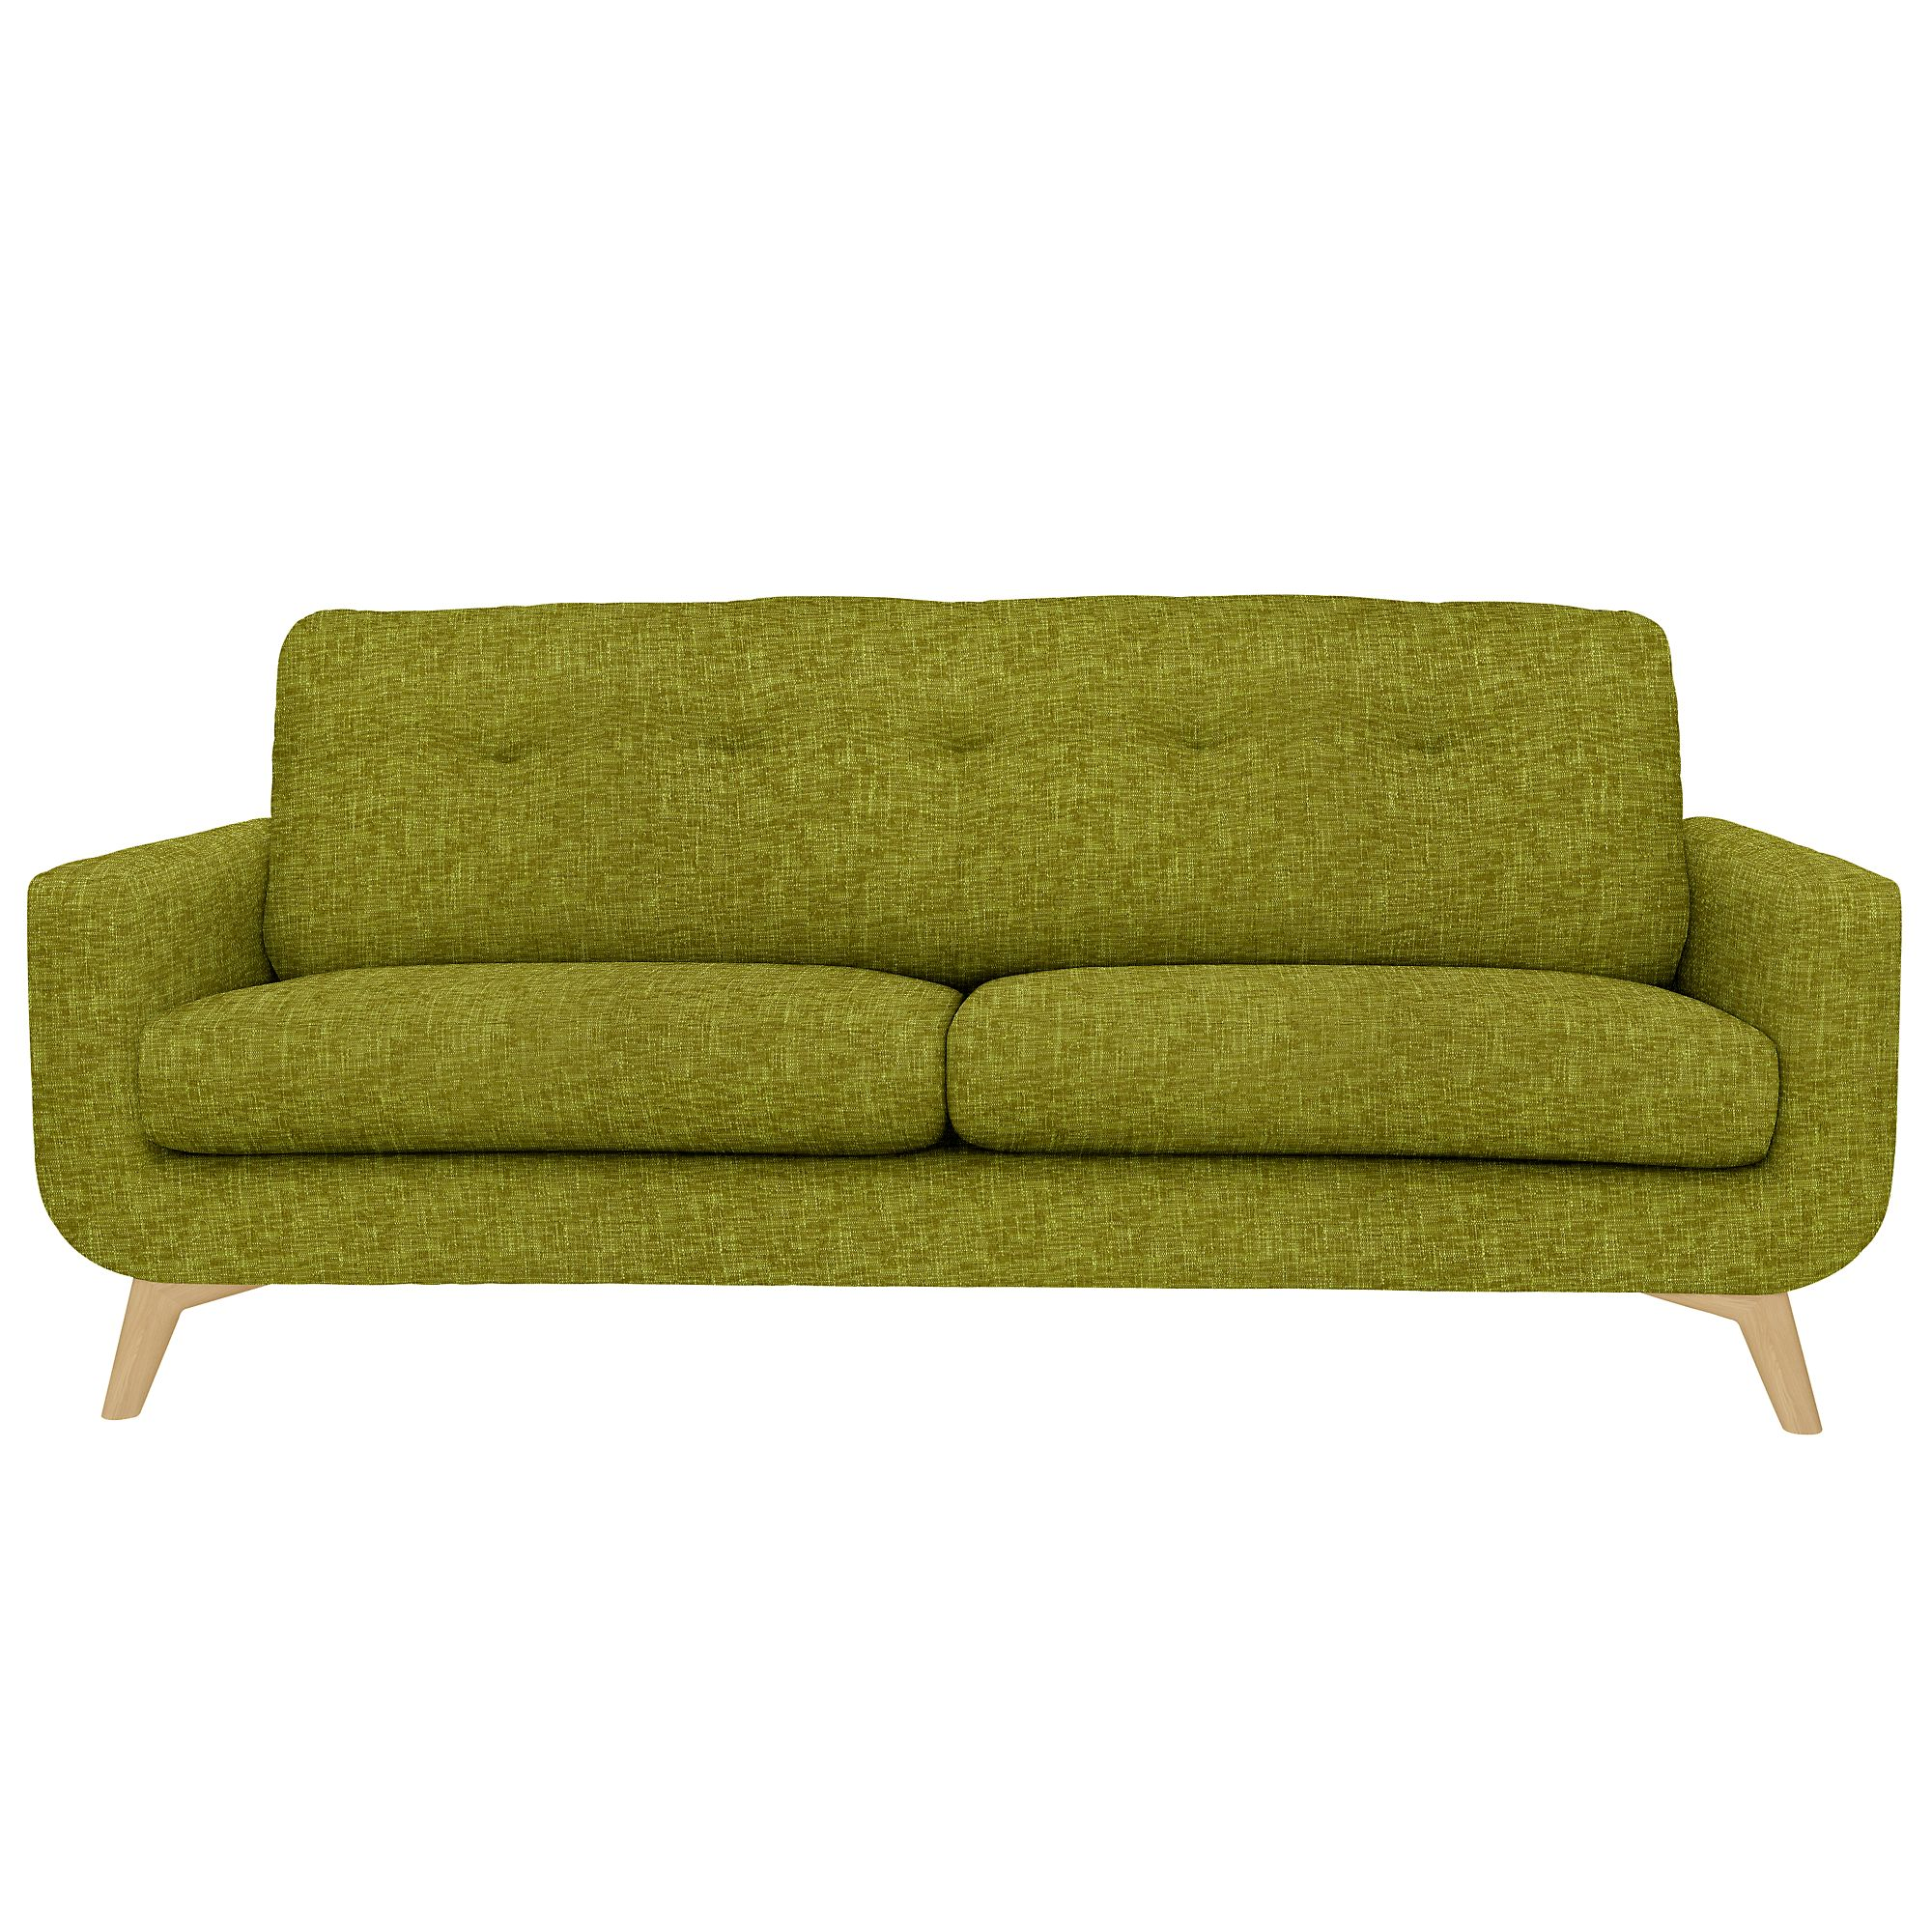 John lewis barbican large sofa with light legs review for Big sofa technologies